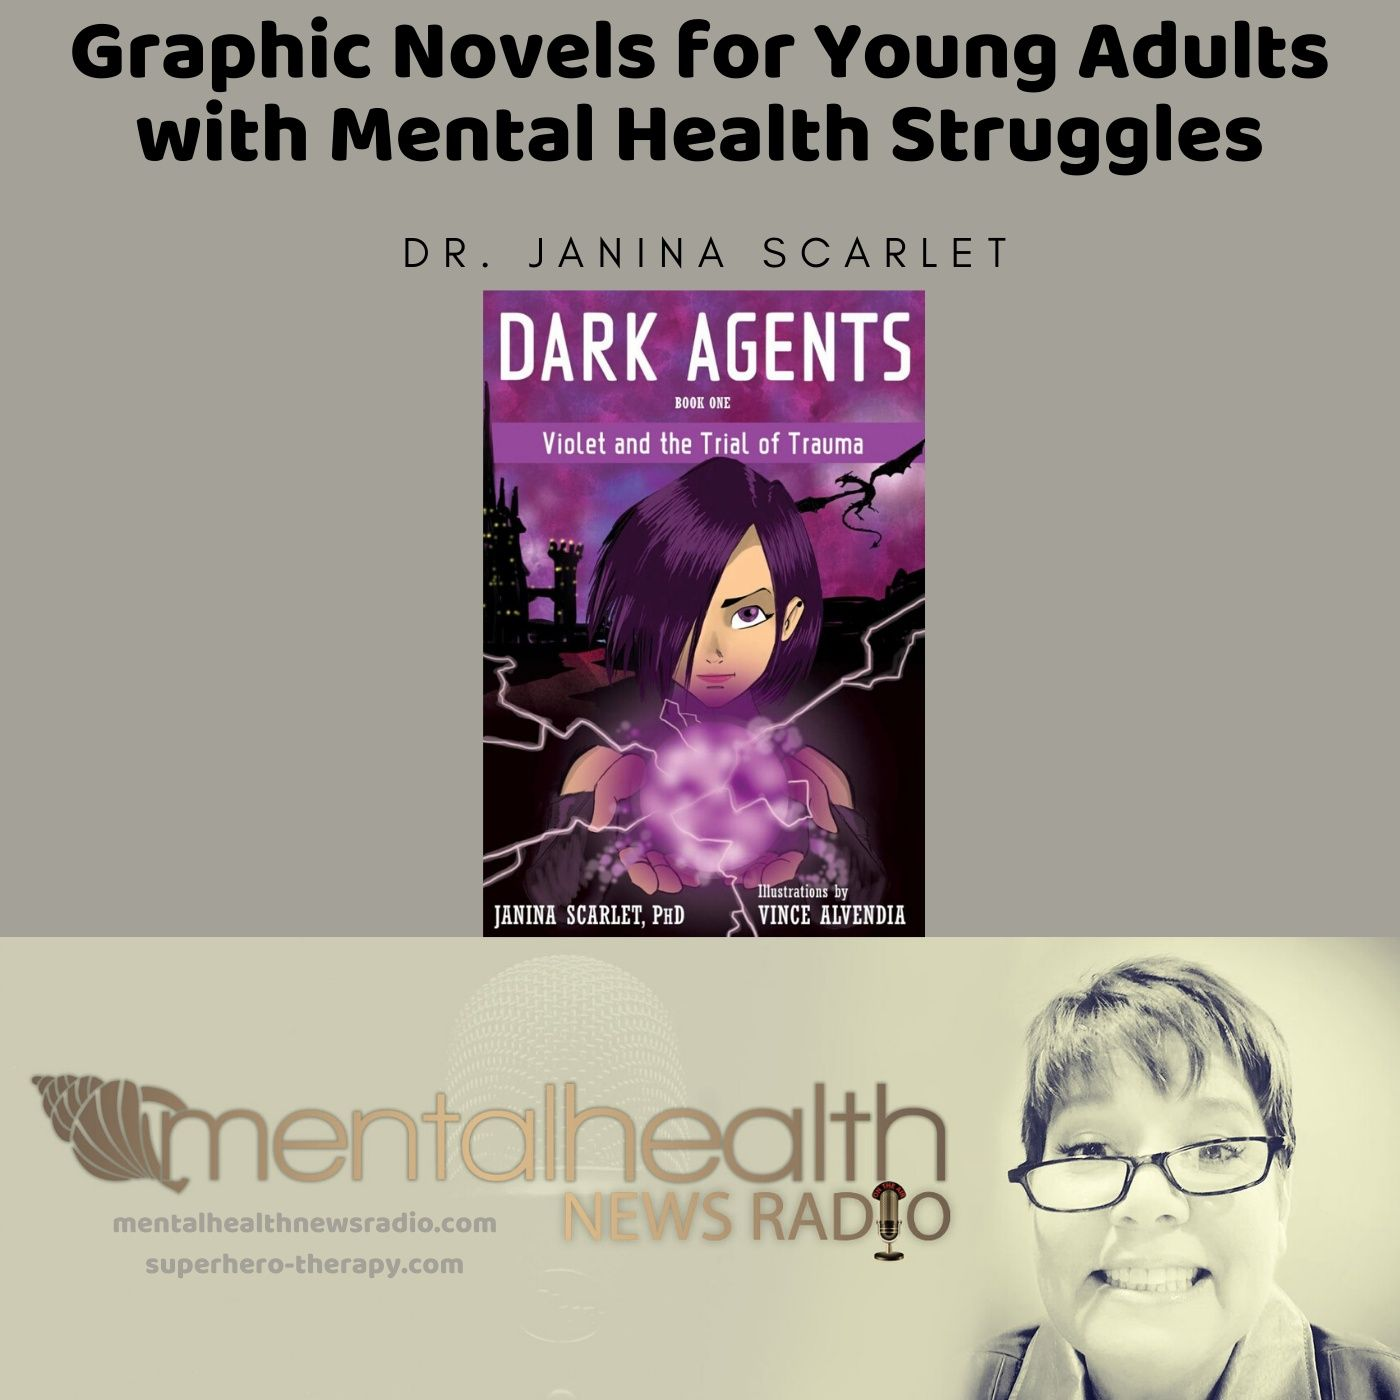 Mental Health News Radio - Graphic Novels for Young Adults with Mental Health Struggles